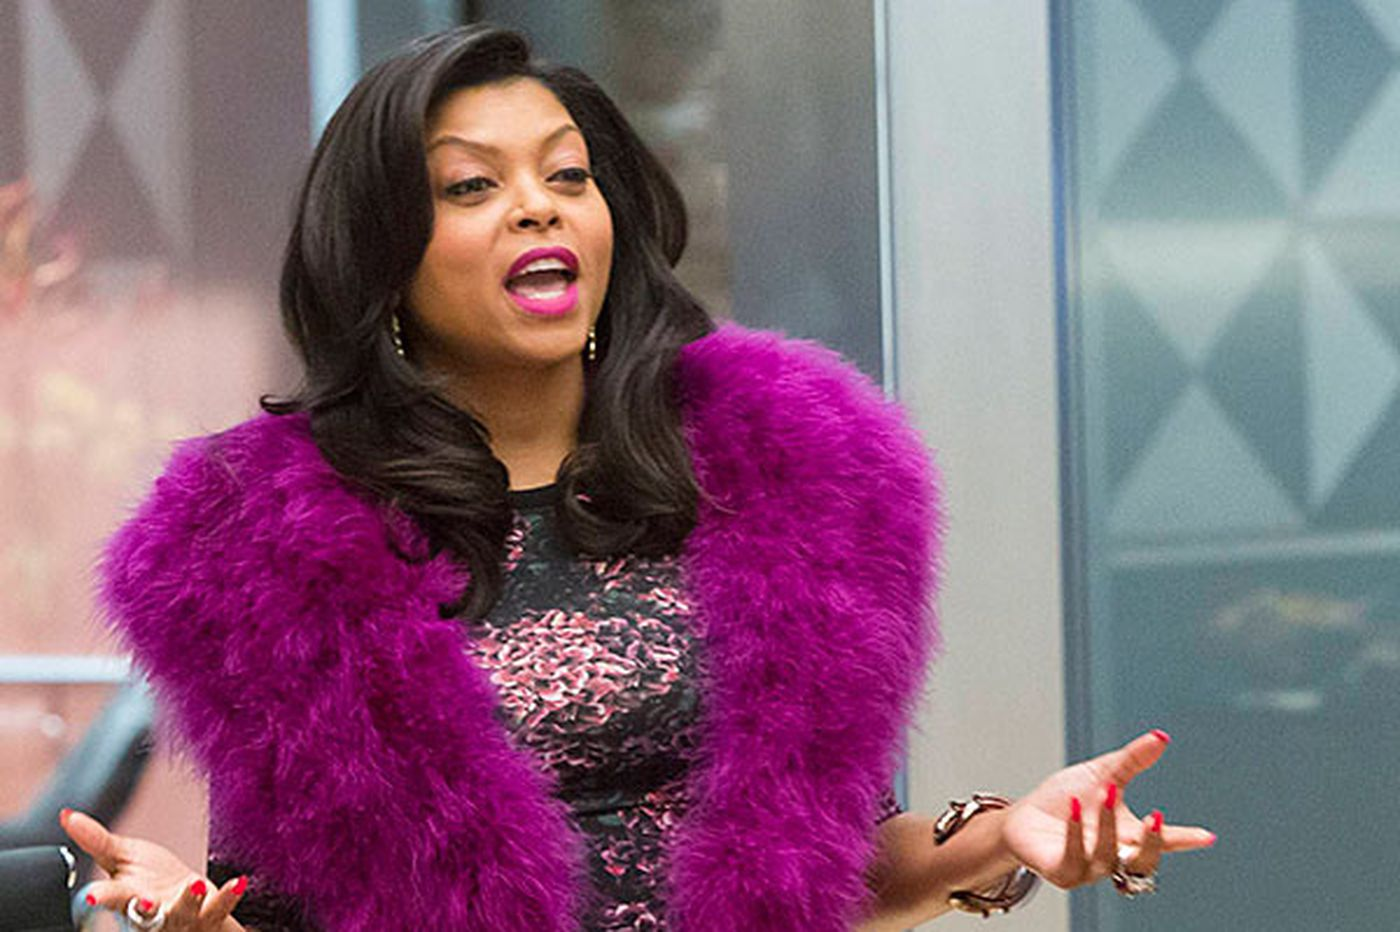 Top 10 'Empire' songs and the stories behind them